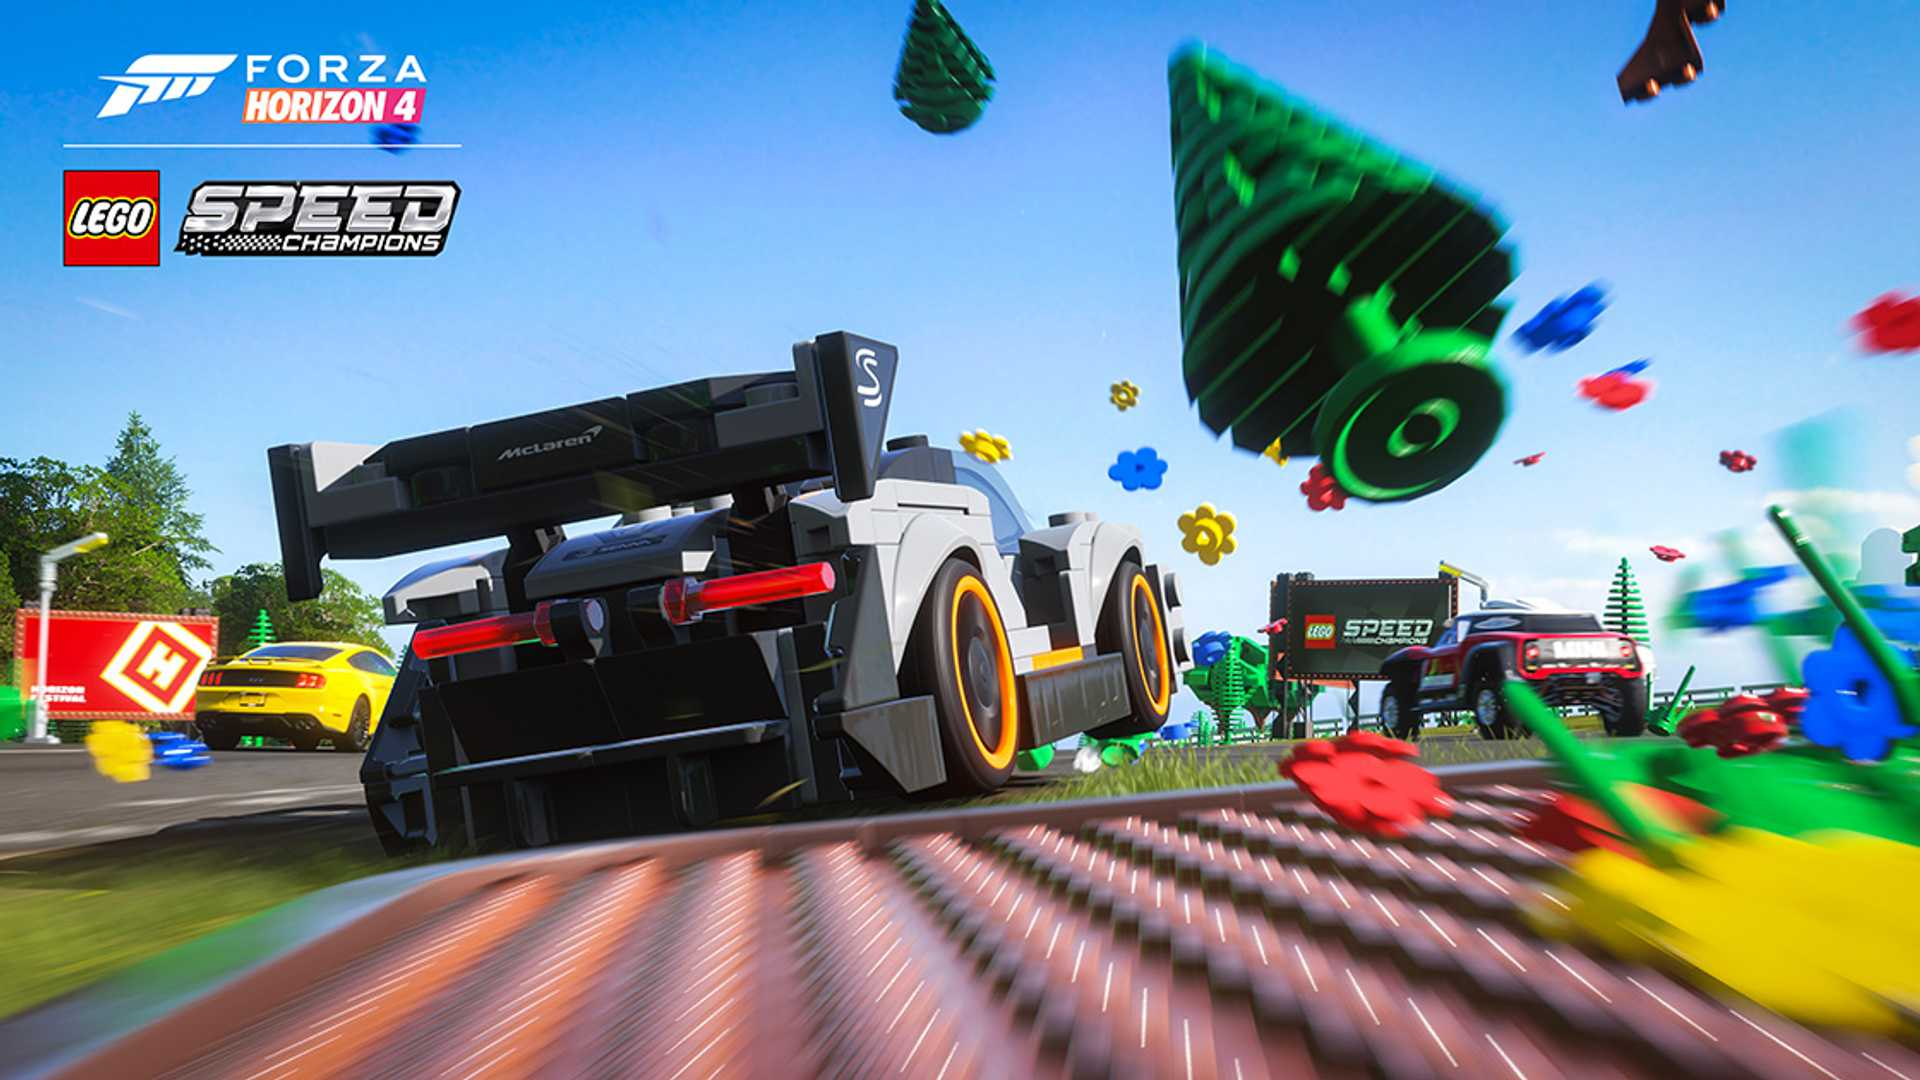 forza-horizon-4-lego-speed-champions